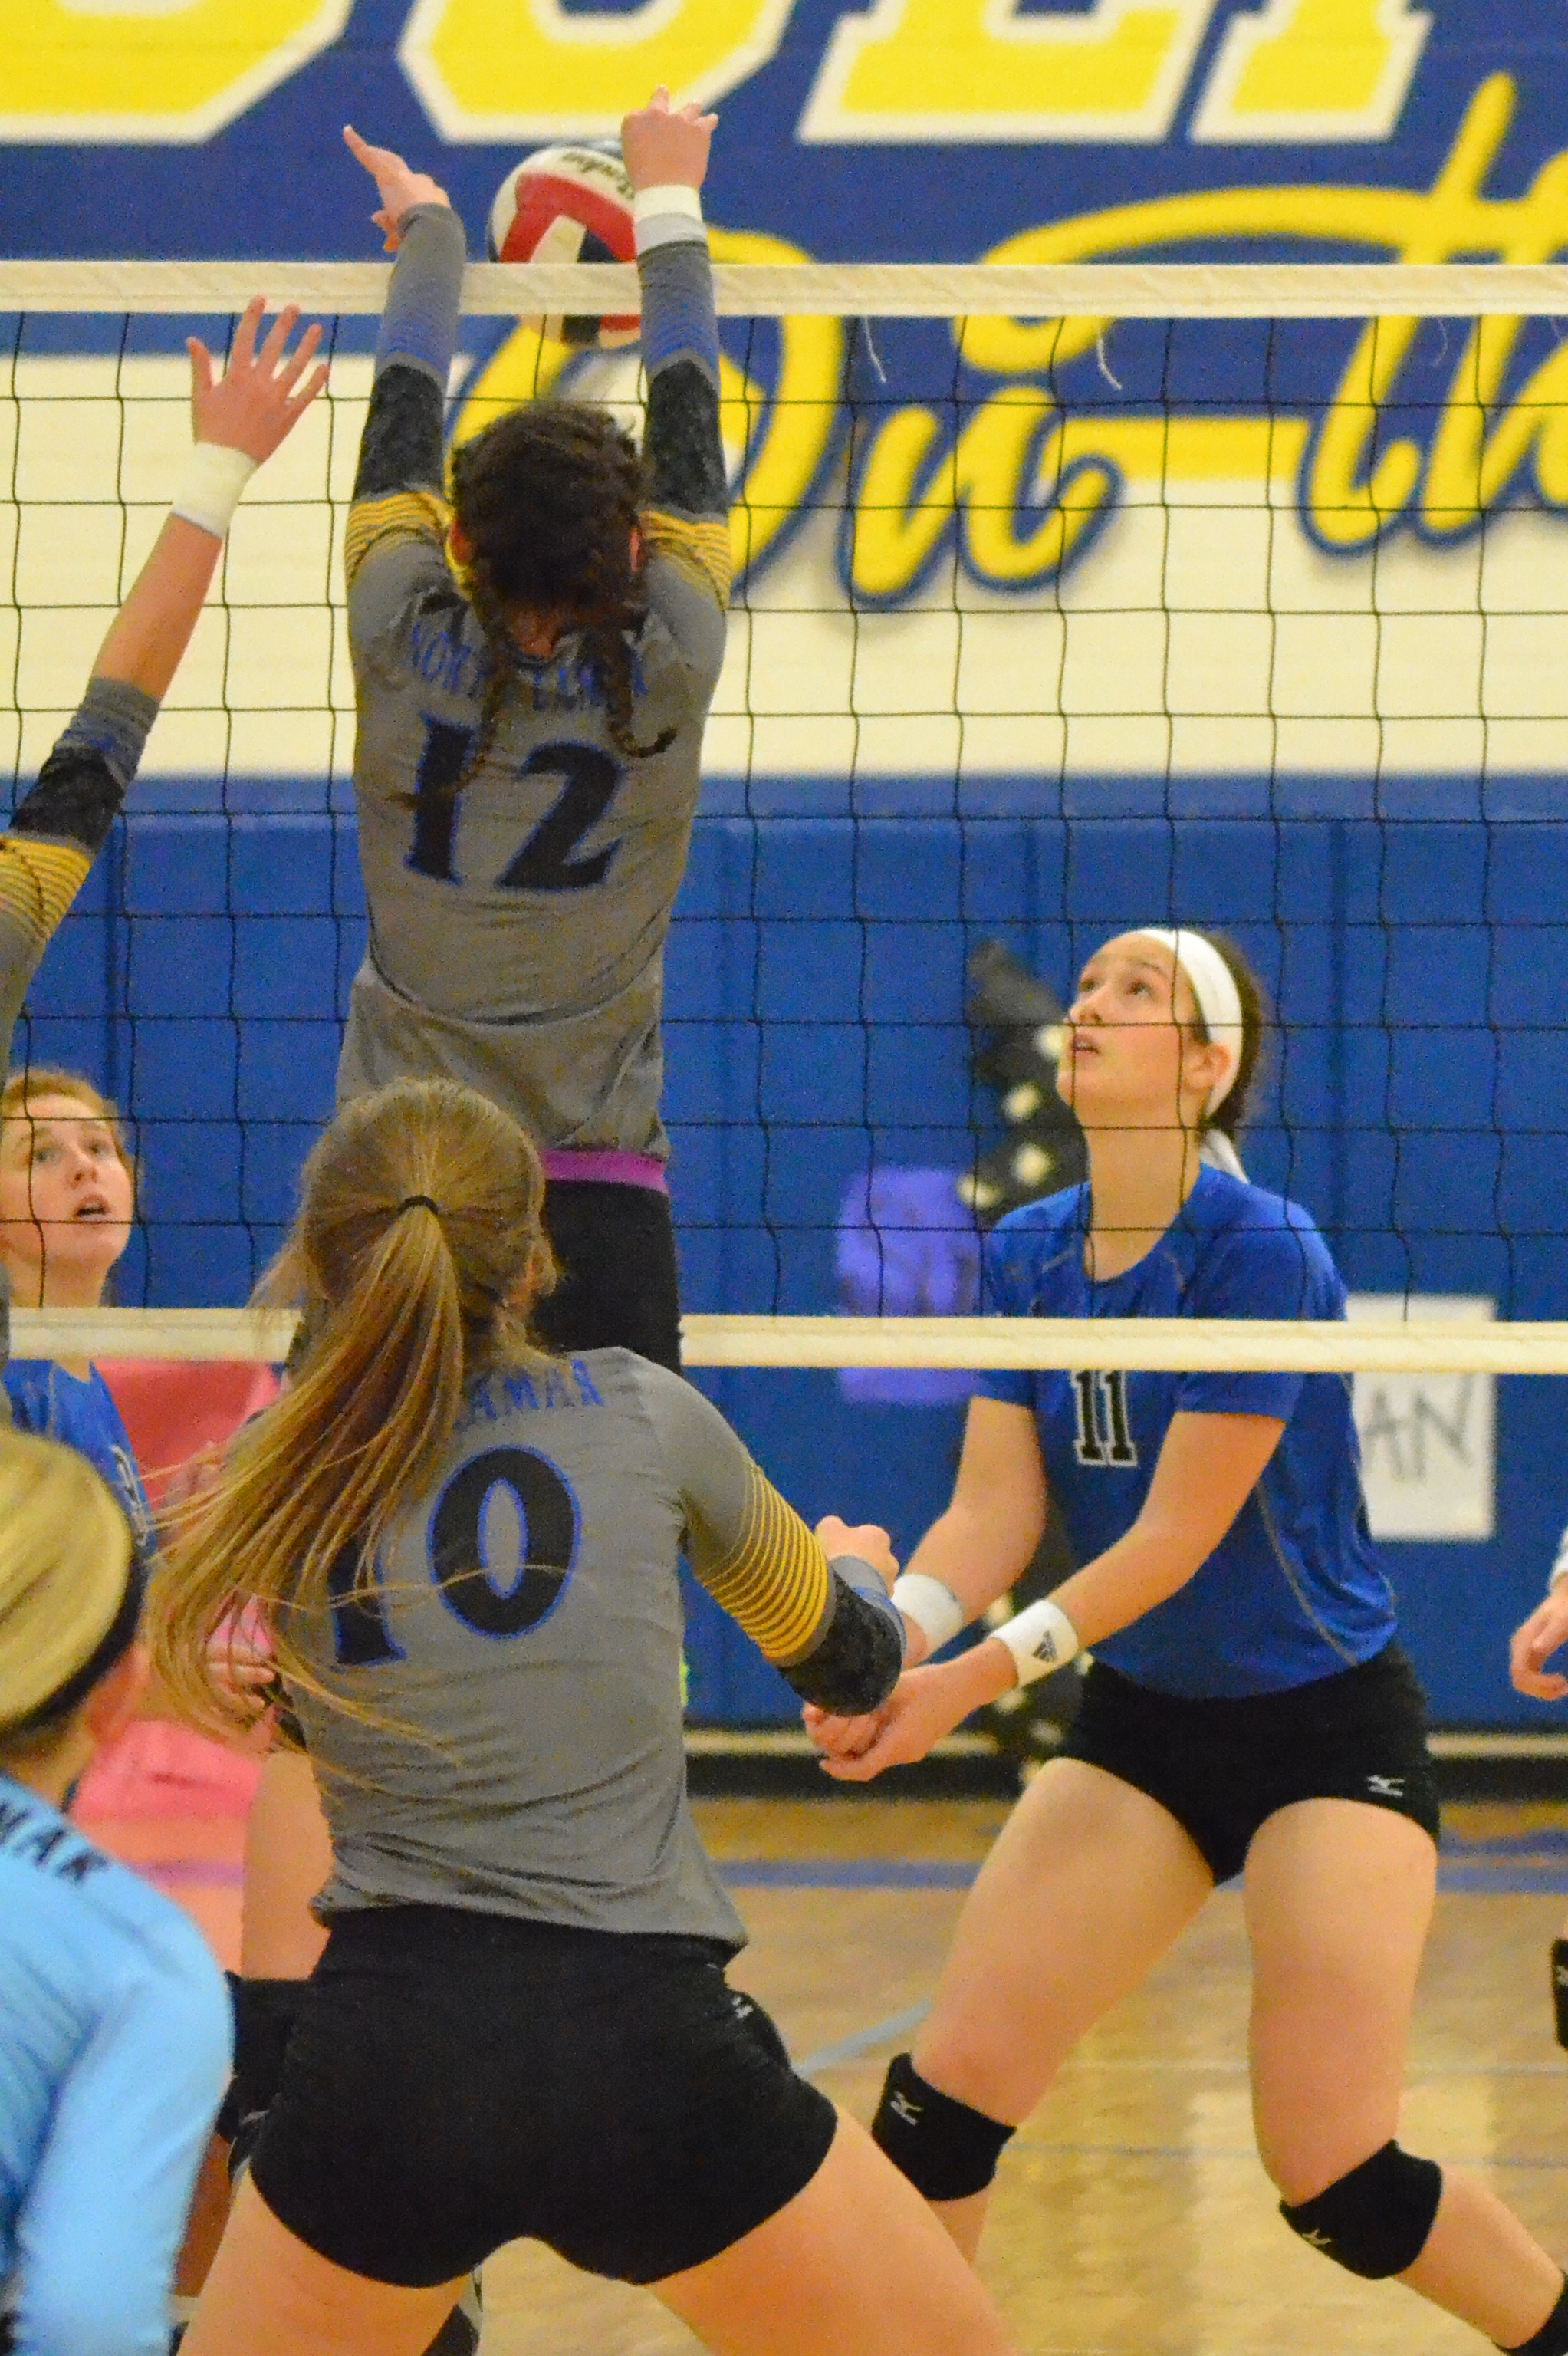 (Photo by Beverly White) McKenzie Mitchell (12) with a block against Emory Rains while Bailee Nickerson (10) watches.